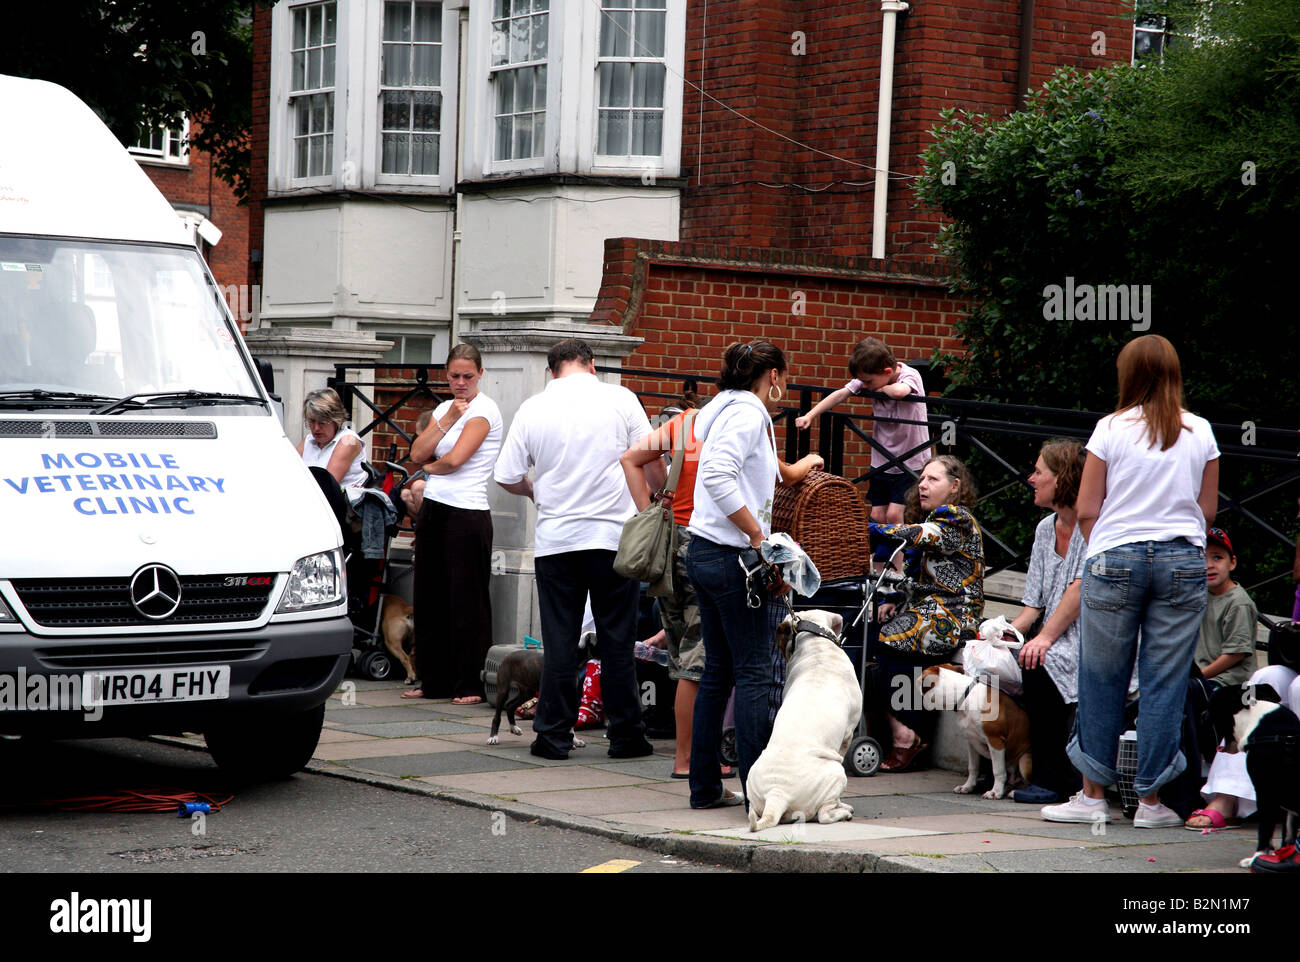 People & pets wait for mobile vets clinic in London - Stock Image